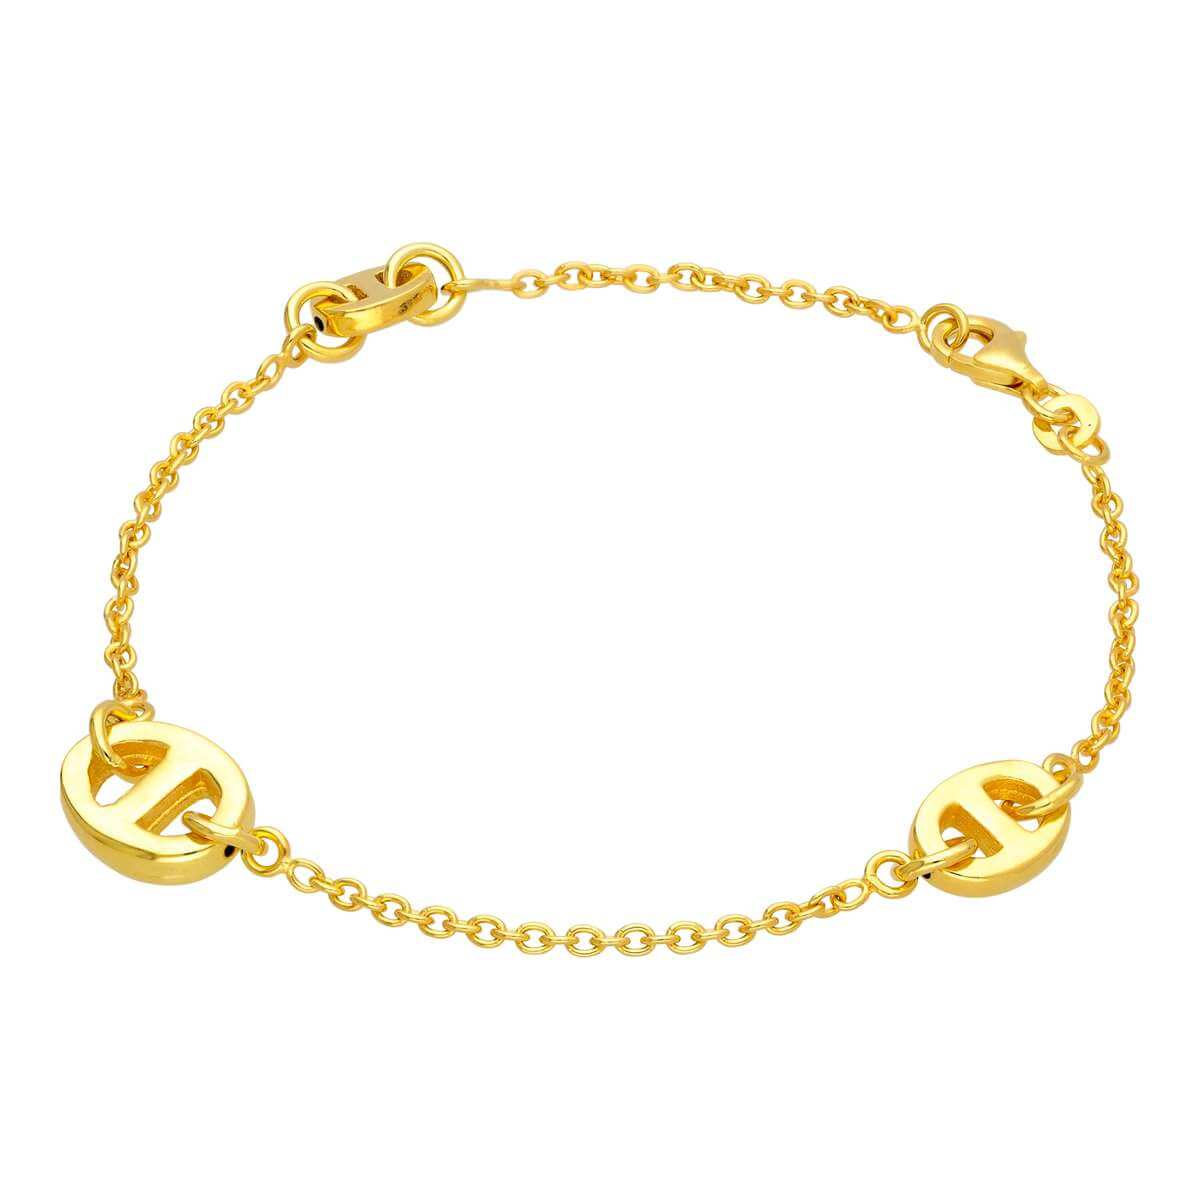 Gold Plated Sterling Silver Chunky Oval Link Bracelet 8 Inch